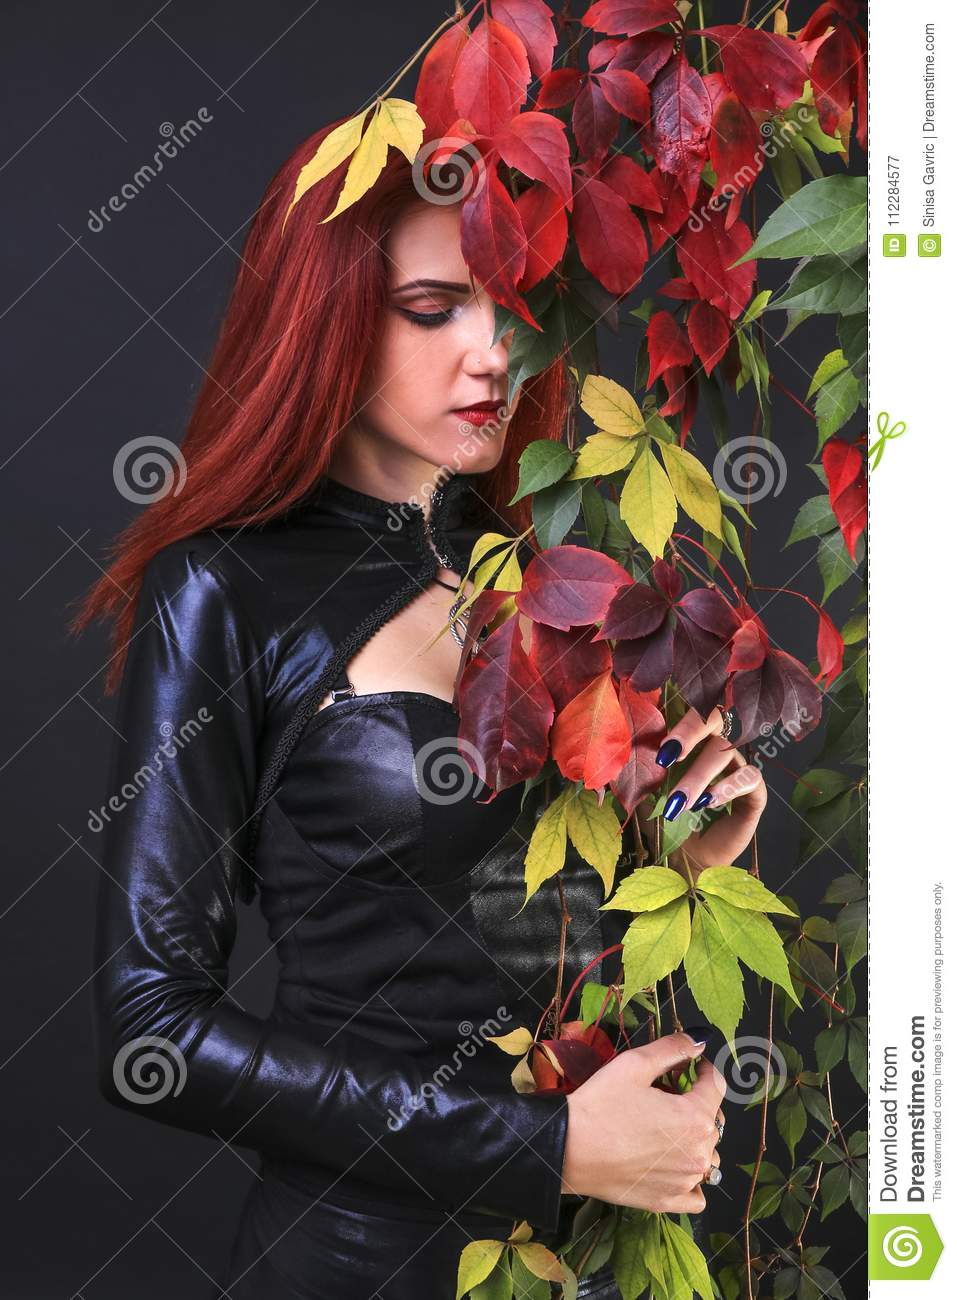 Profile Of A Tall Red Head Gothic Woman Among The Autumn Vines